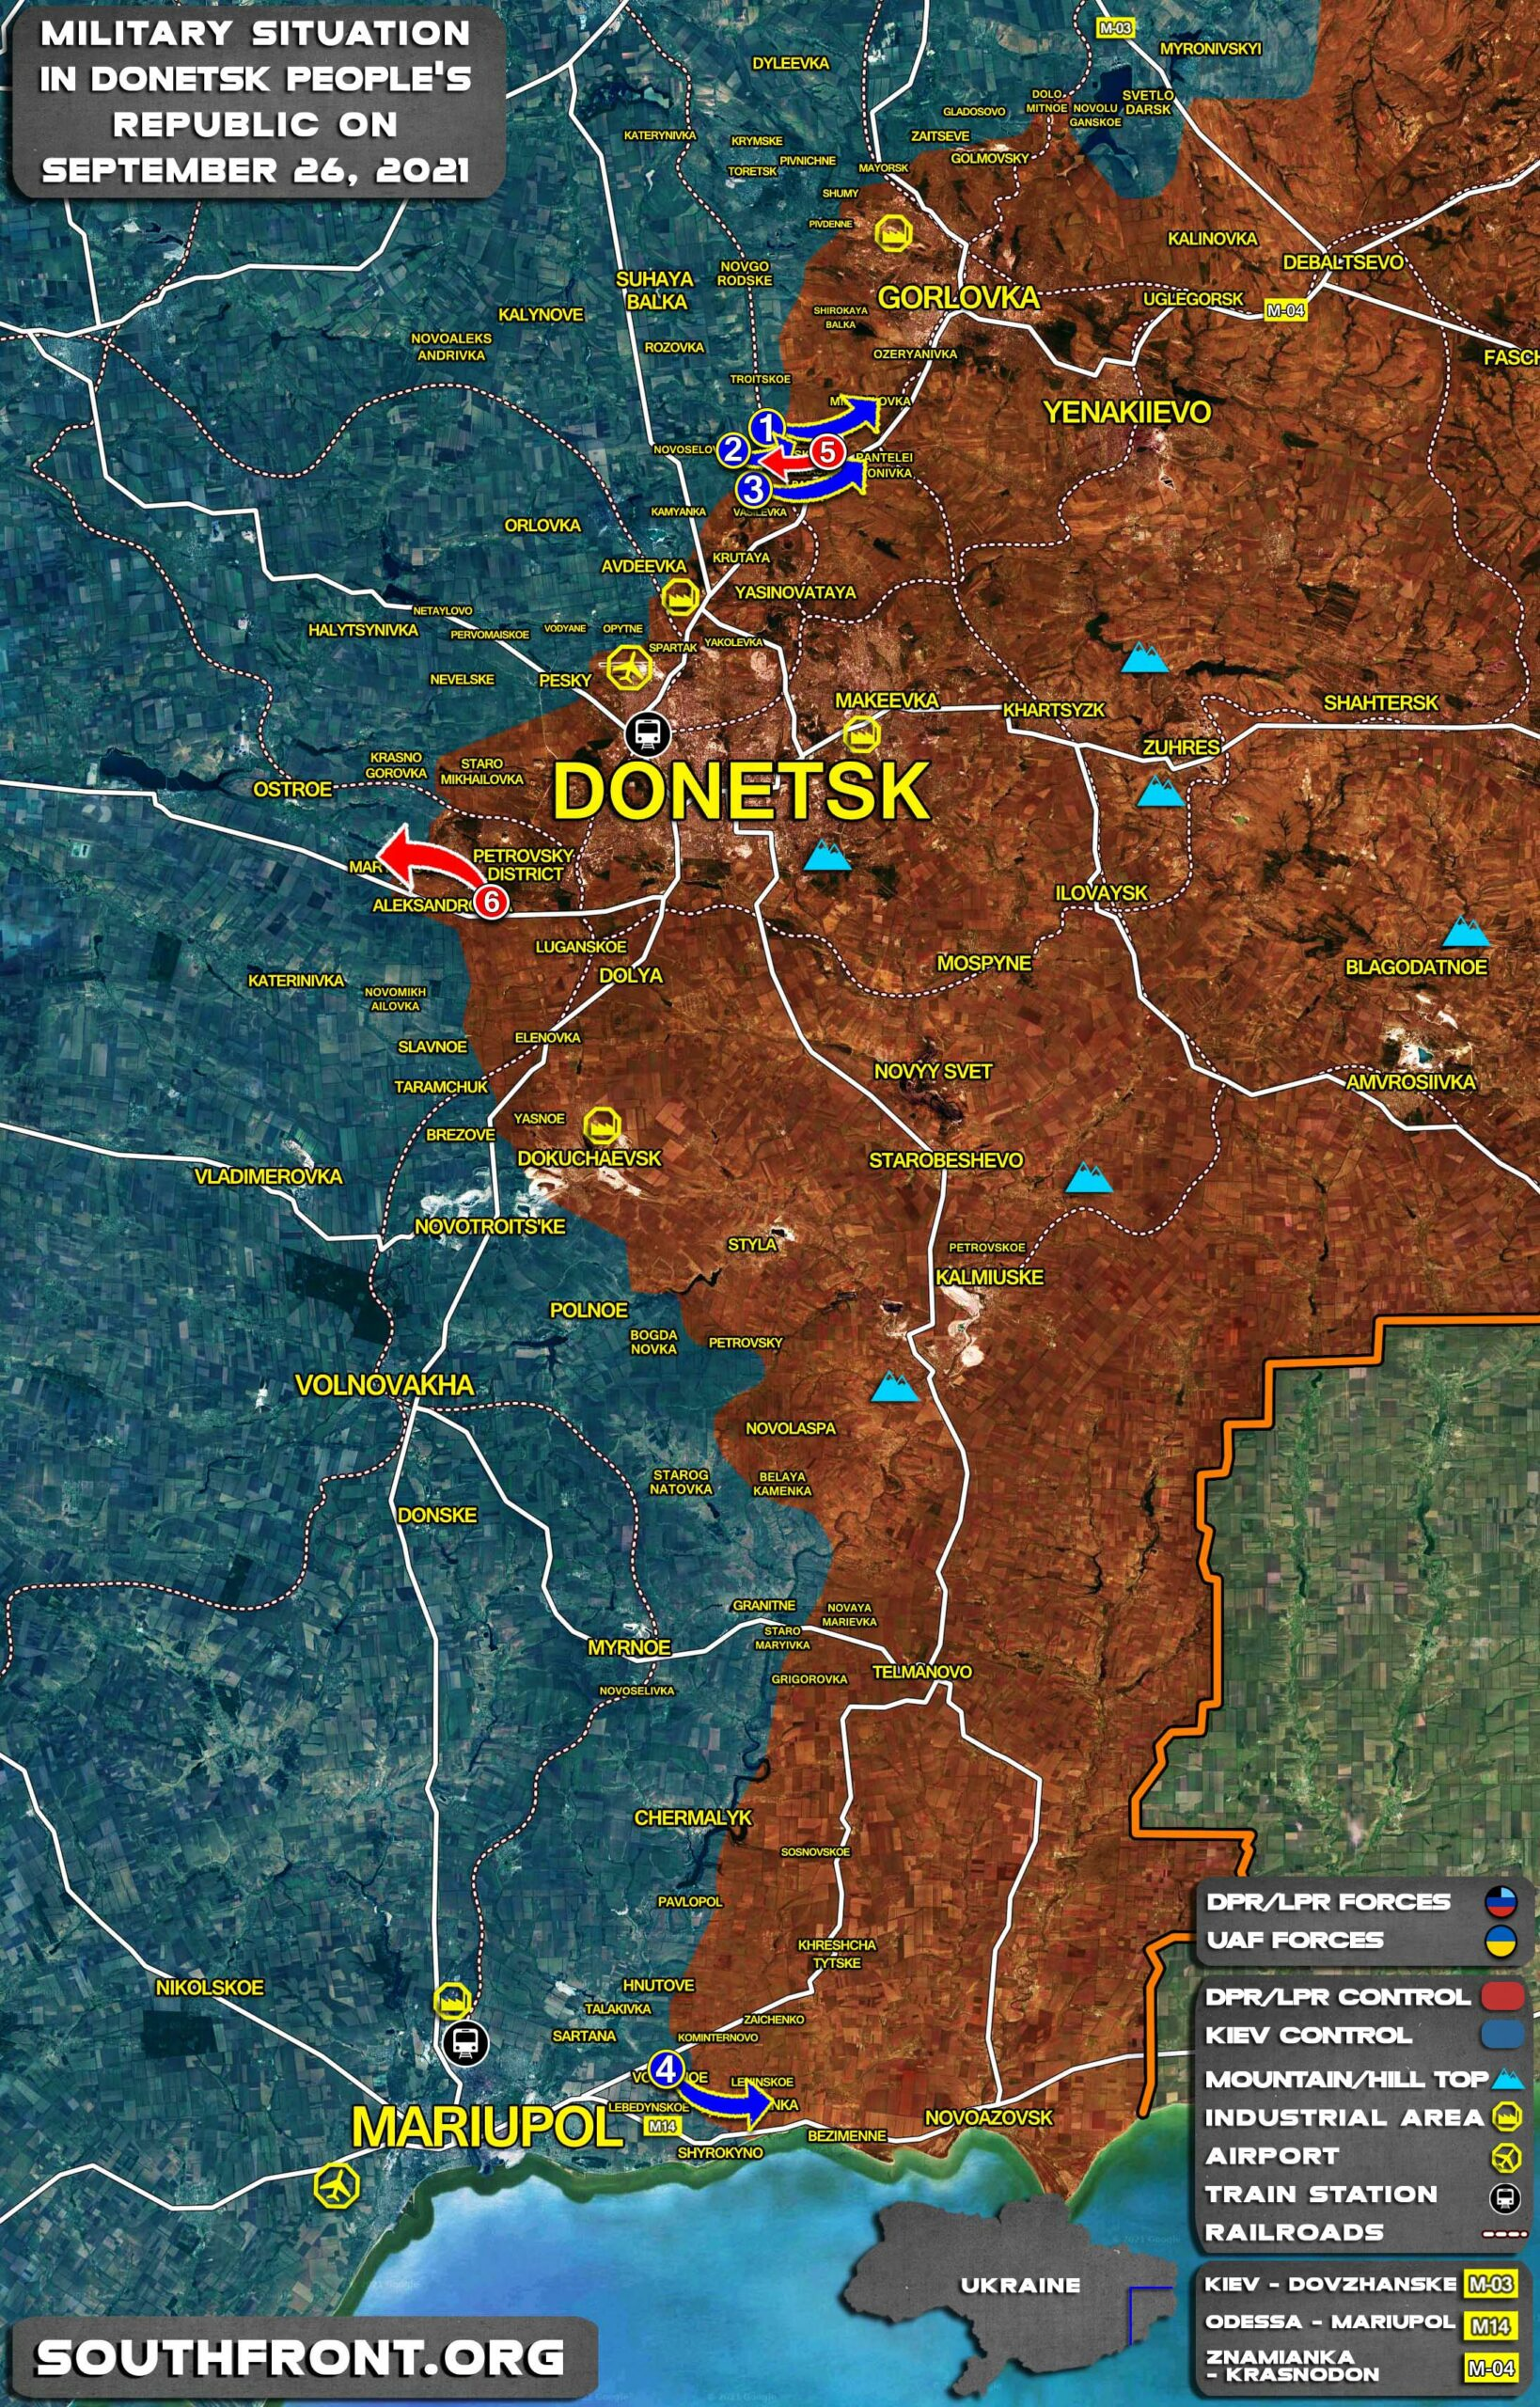 Military Situation In Donetsk People's Republic On September 26, 2021 (Map Update)